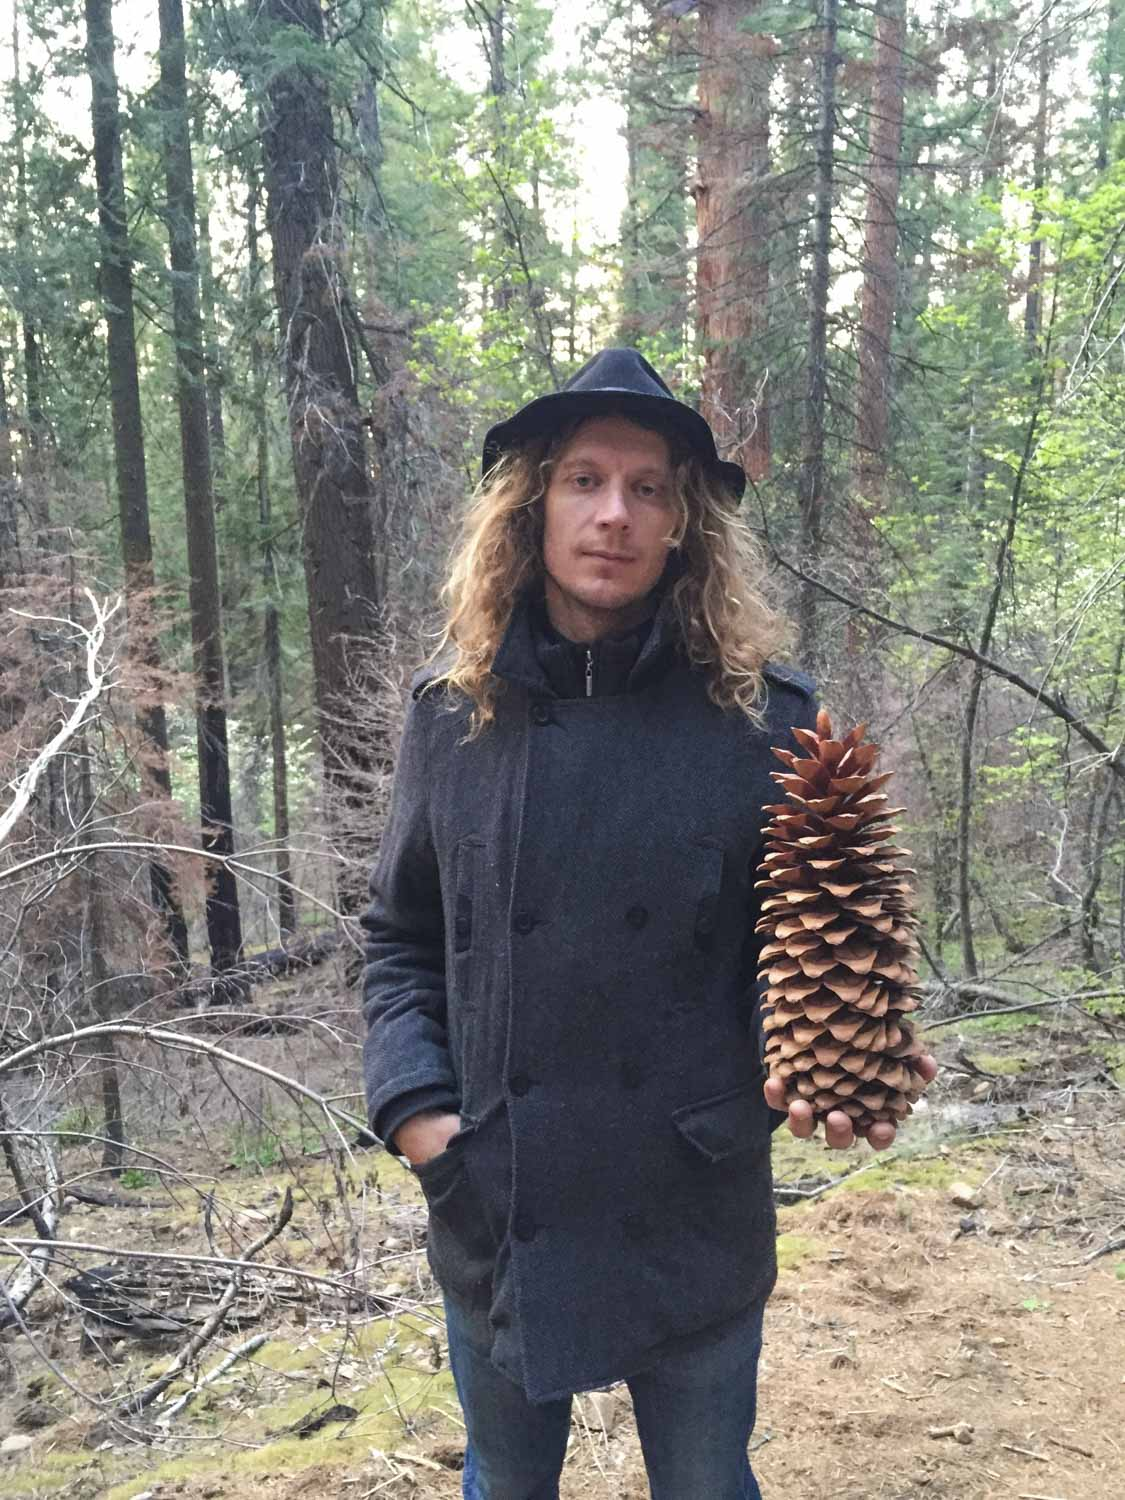 Matty holding a Red Wood Tree pine cone